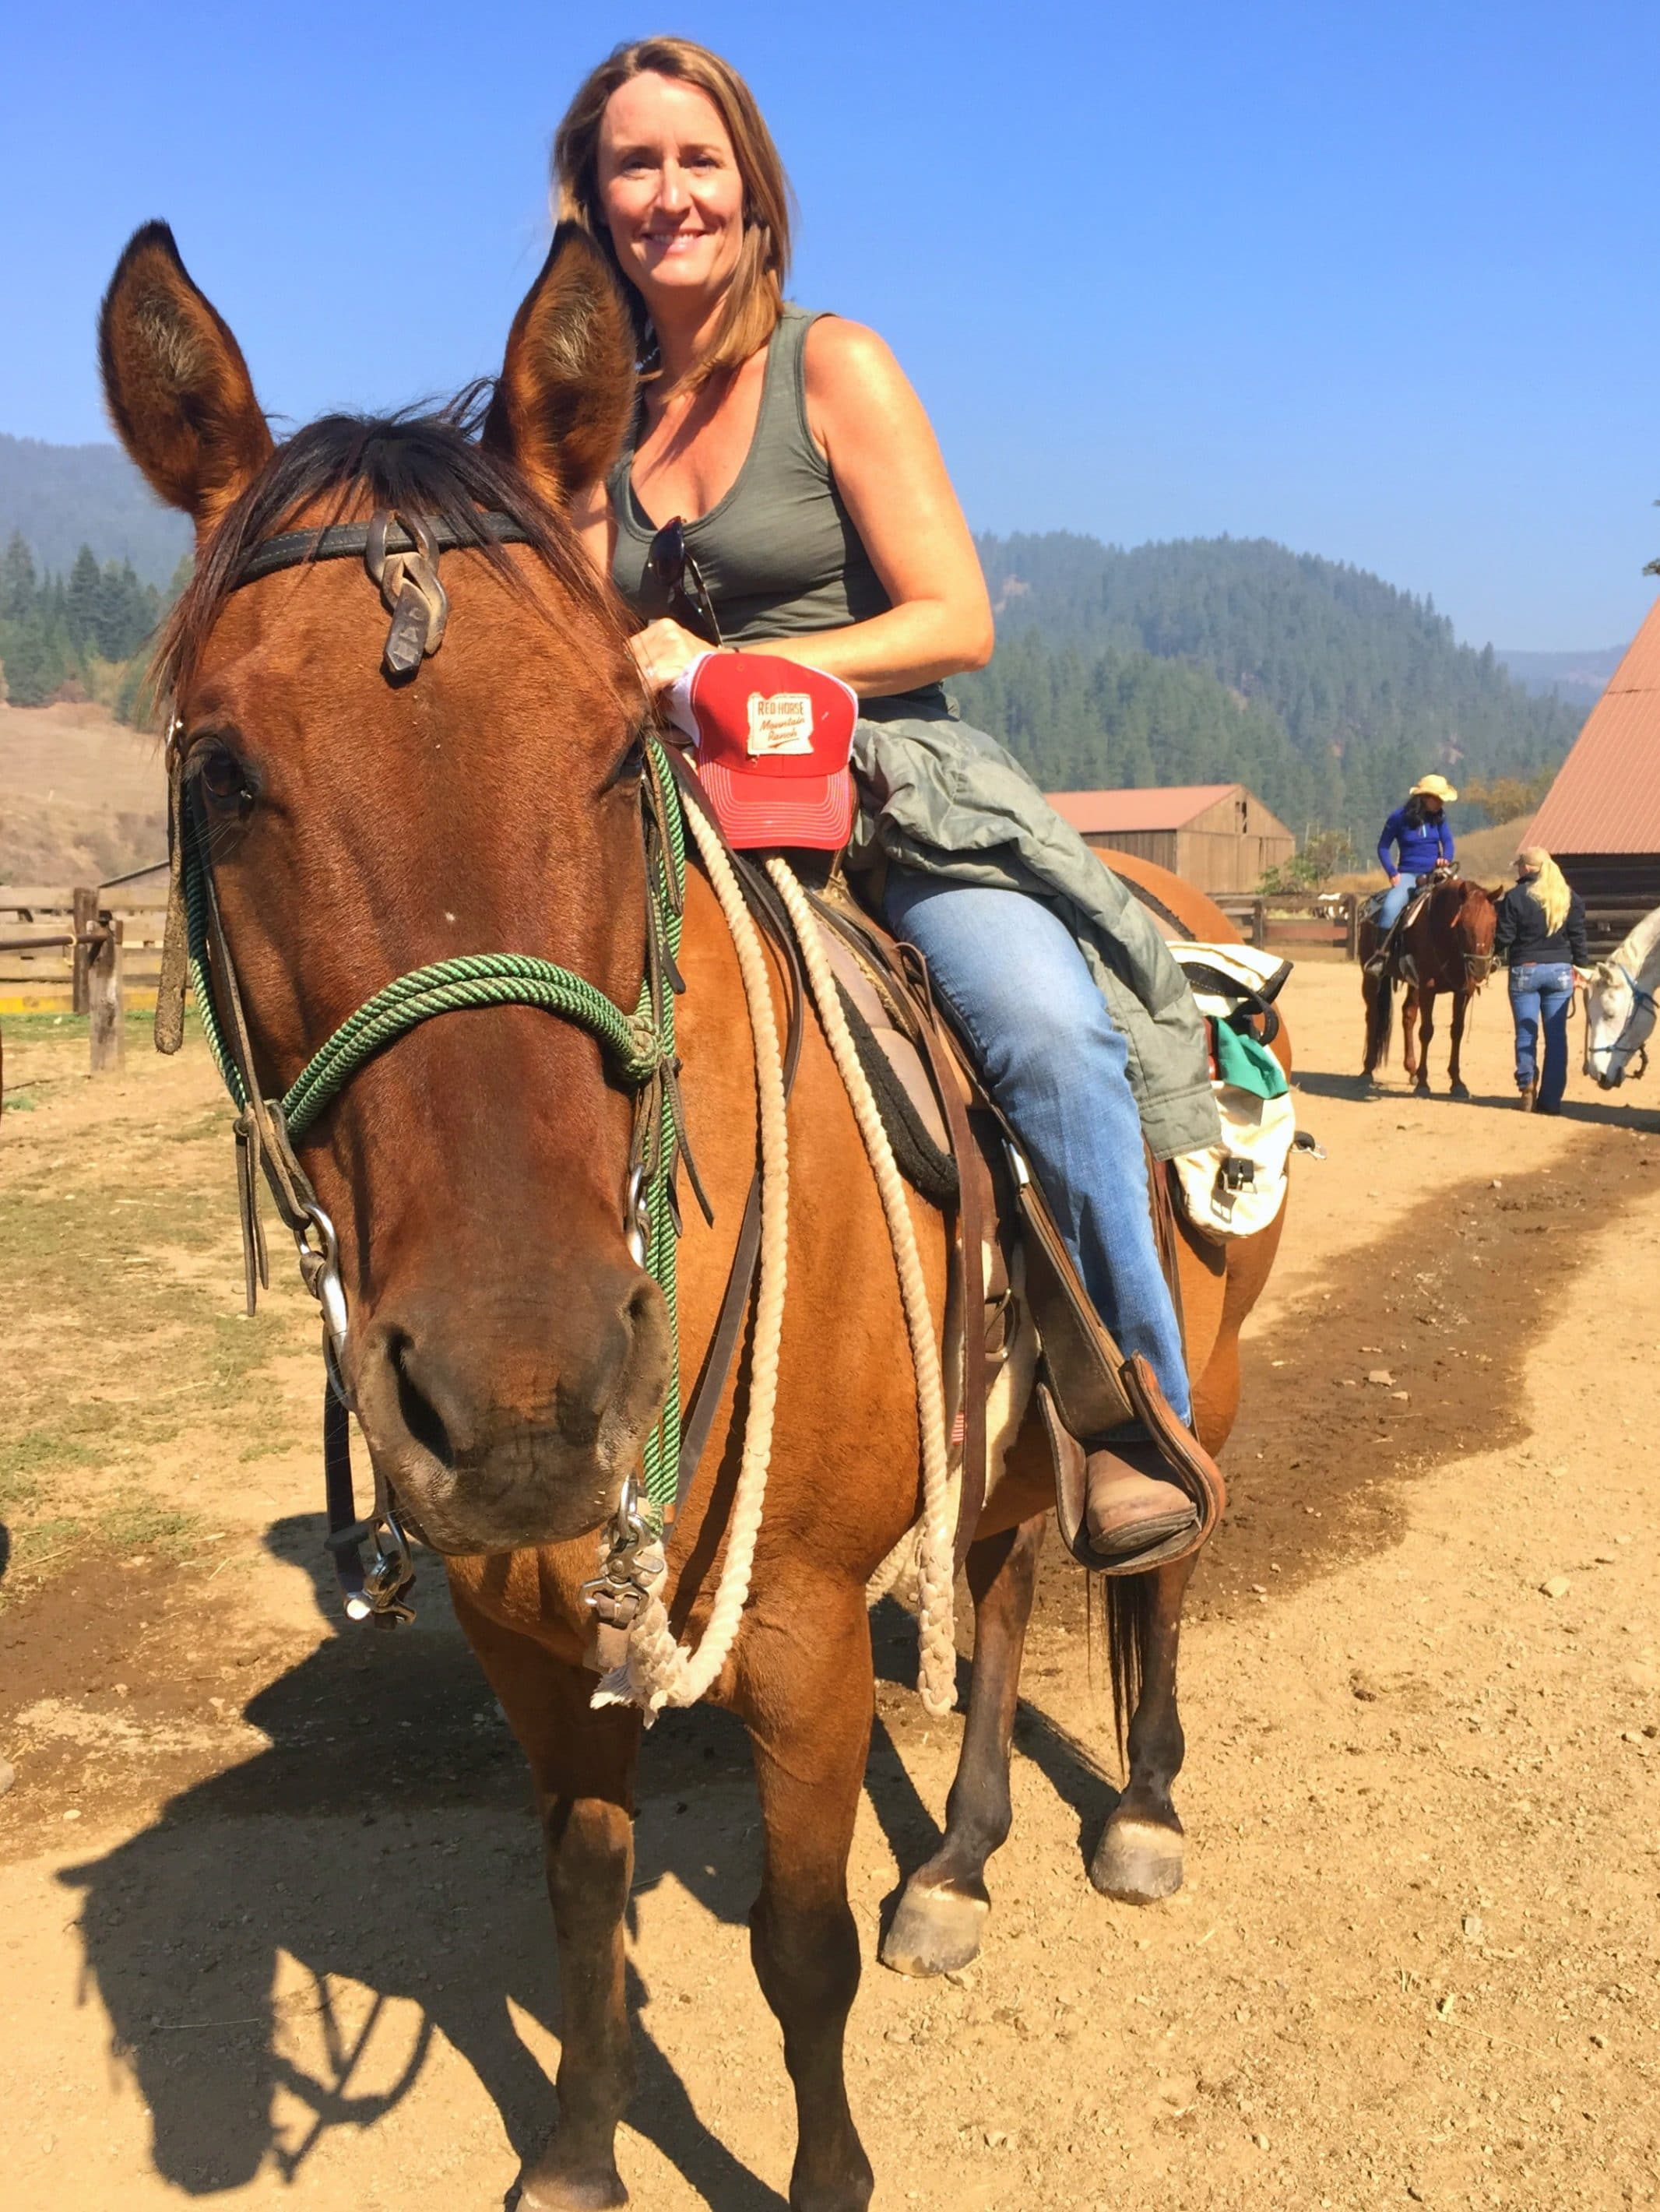 Guests enjoy daily horseback riding lessons and trail rides at Red Horse Mountain Ranch.